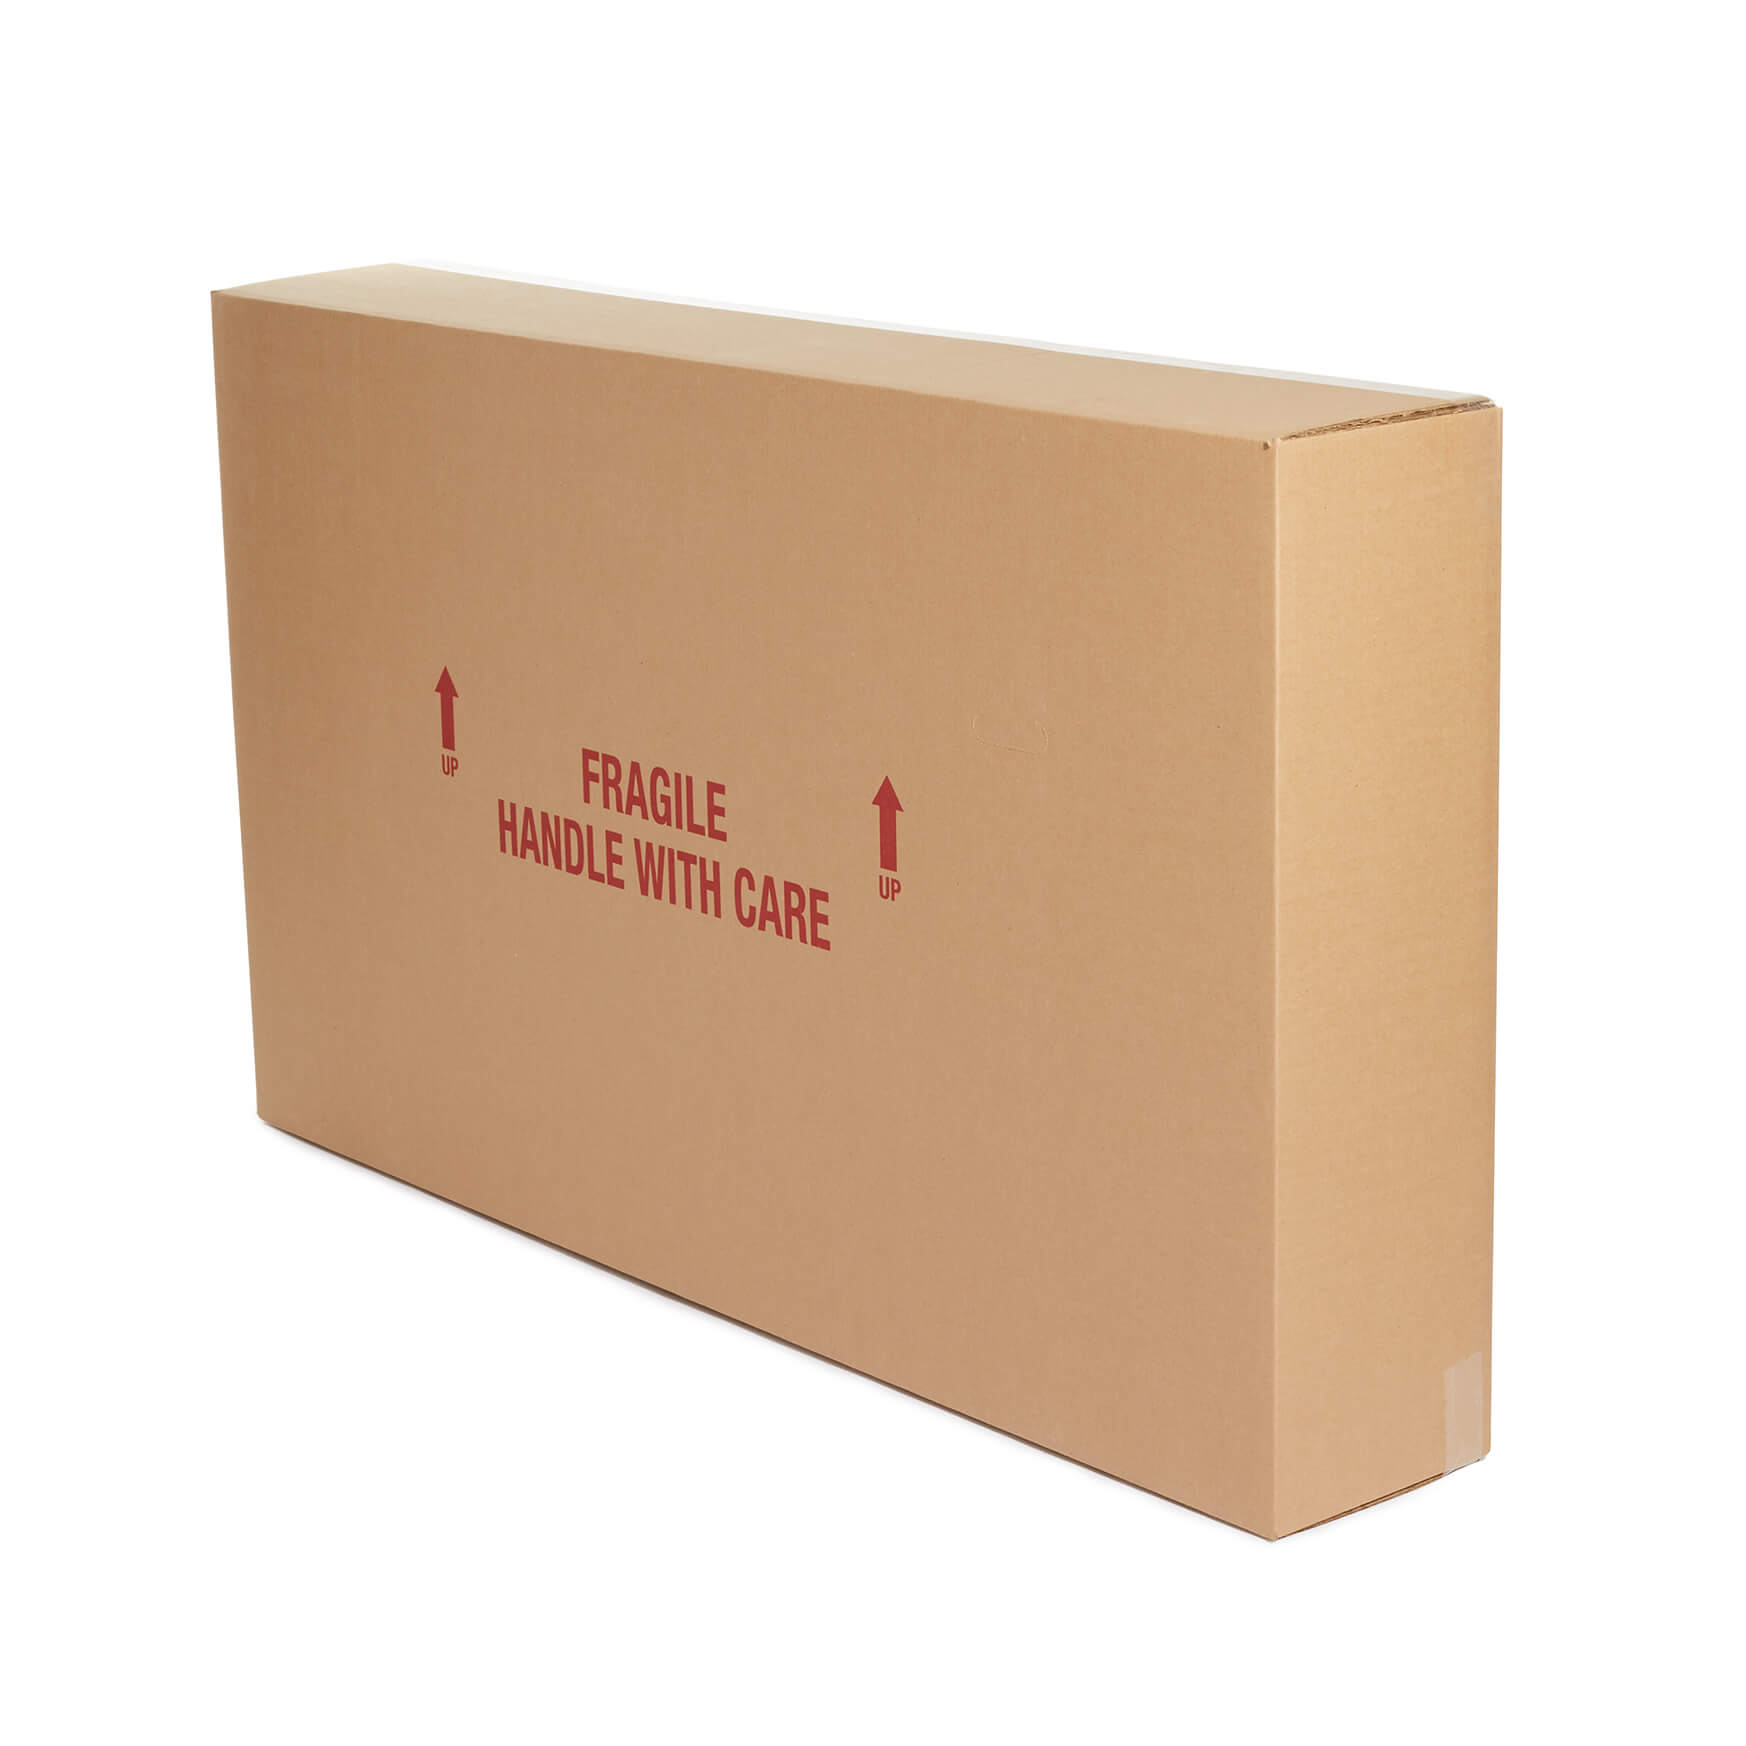 Bike Box Packing R Us Moving Packing Shipping Storing Boxes